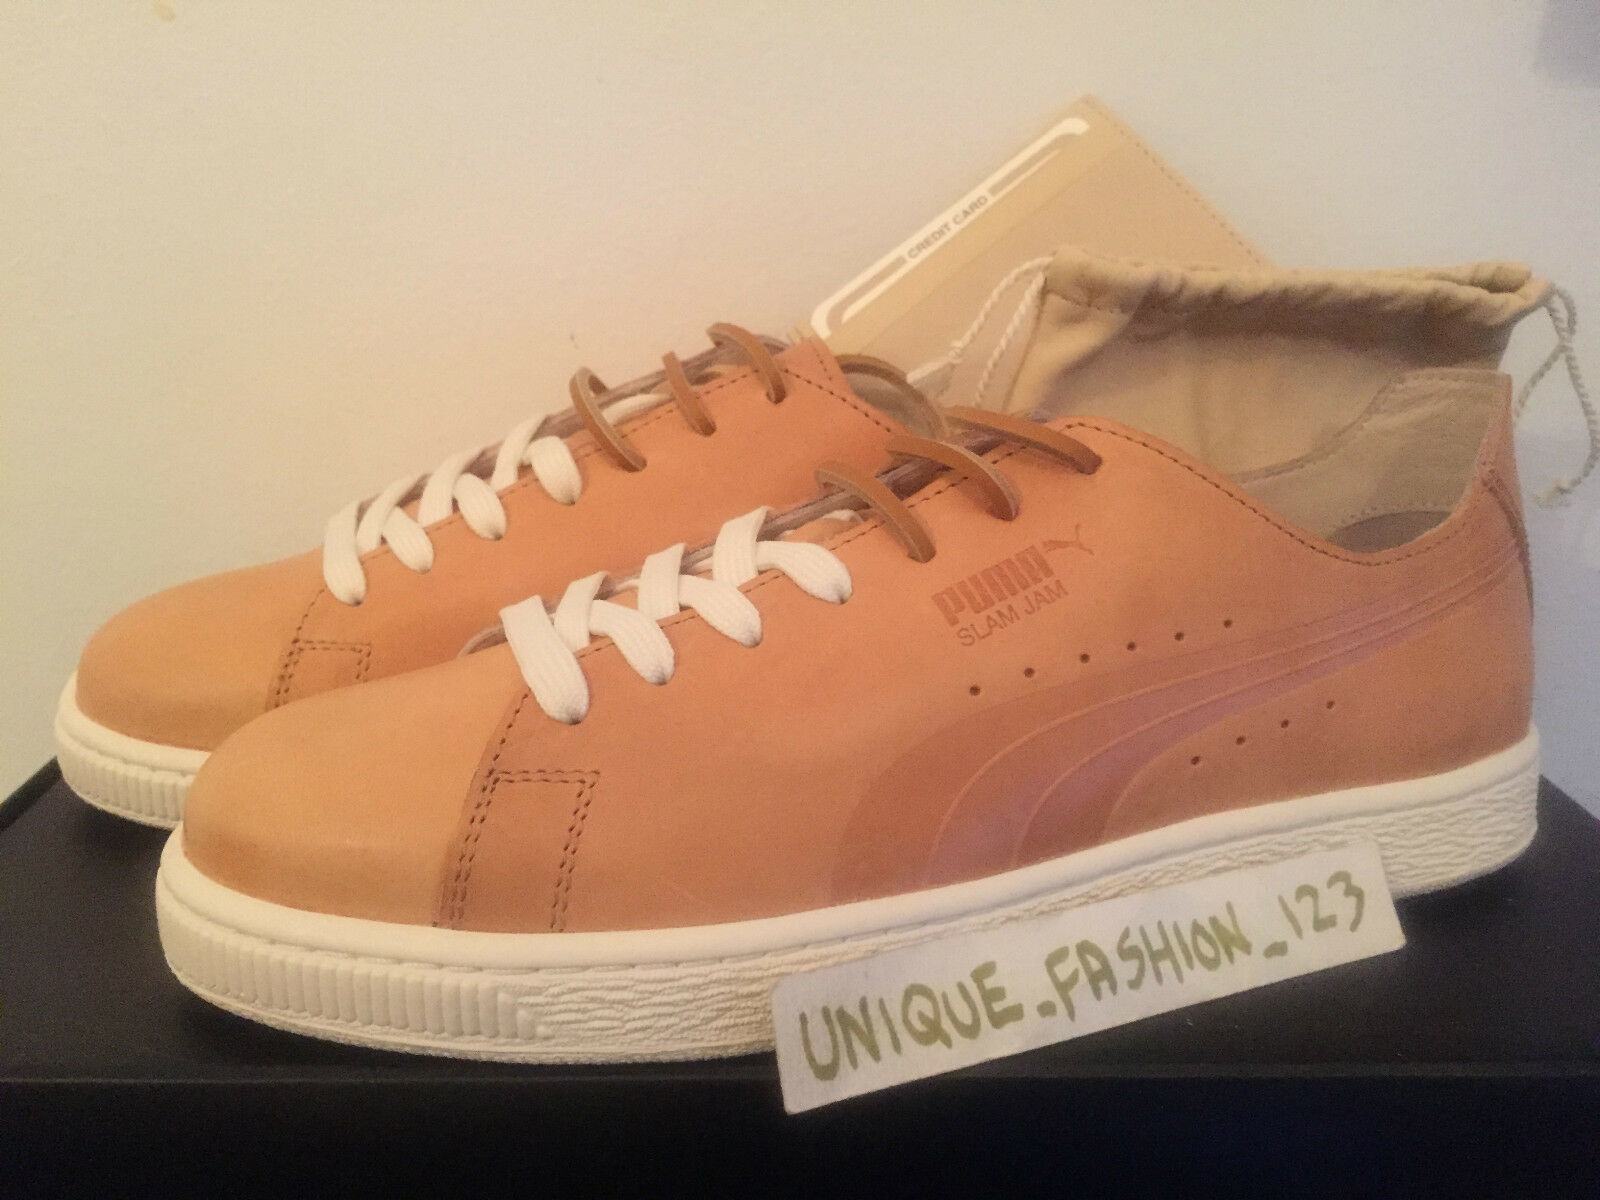 PUMA SOCIALISM STATES X SLAM JAM SOCIALISM PUMA XXV US 7 6 39 TAN LEATHER SECRET COLOUR COLOR 09052c